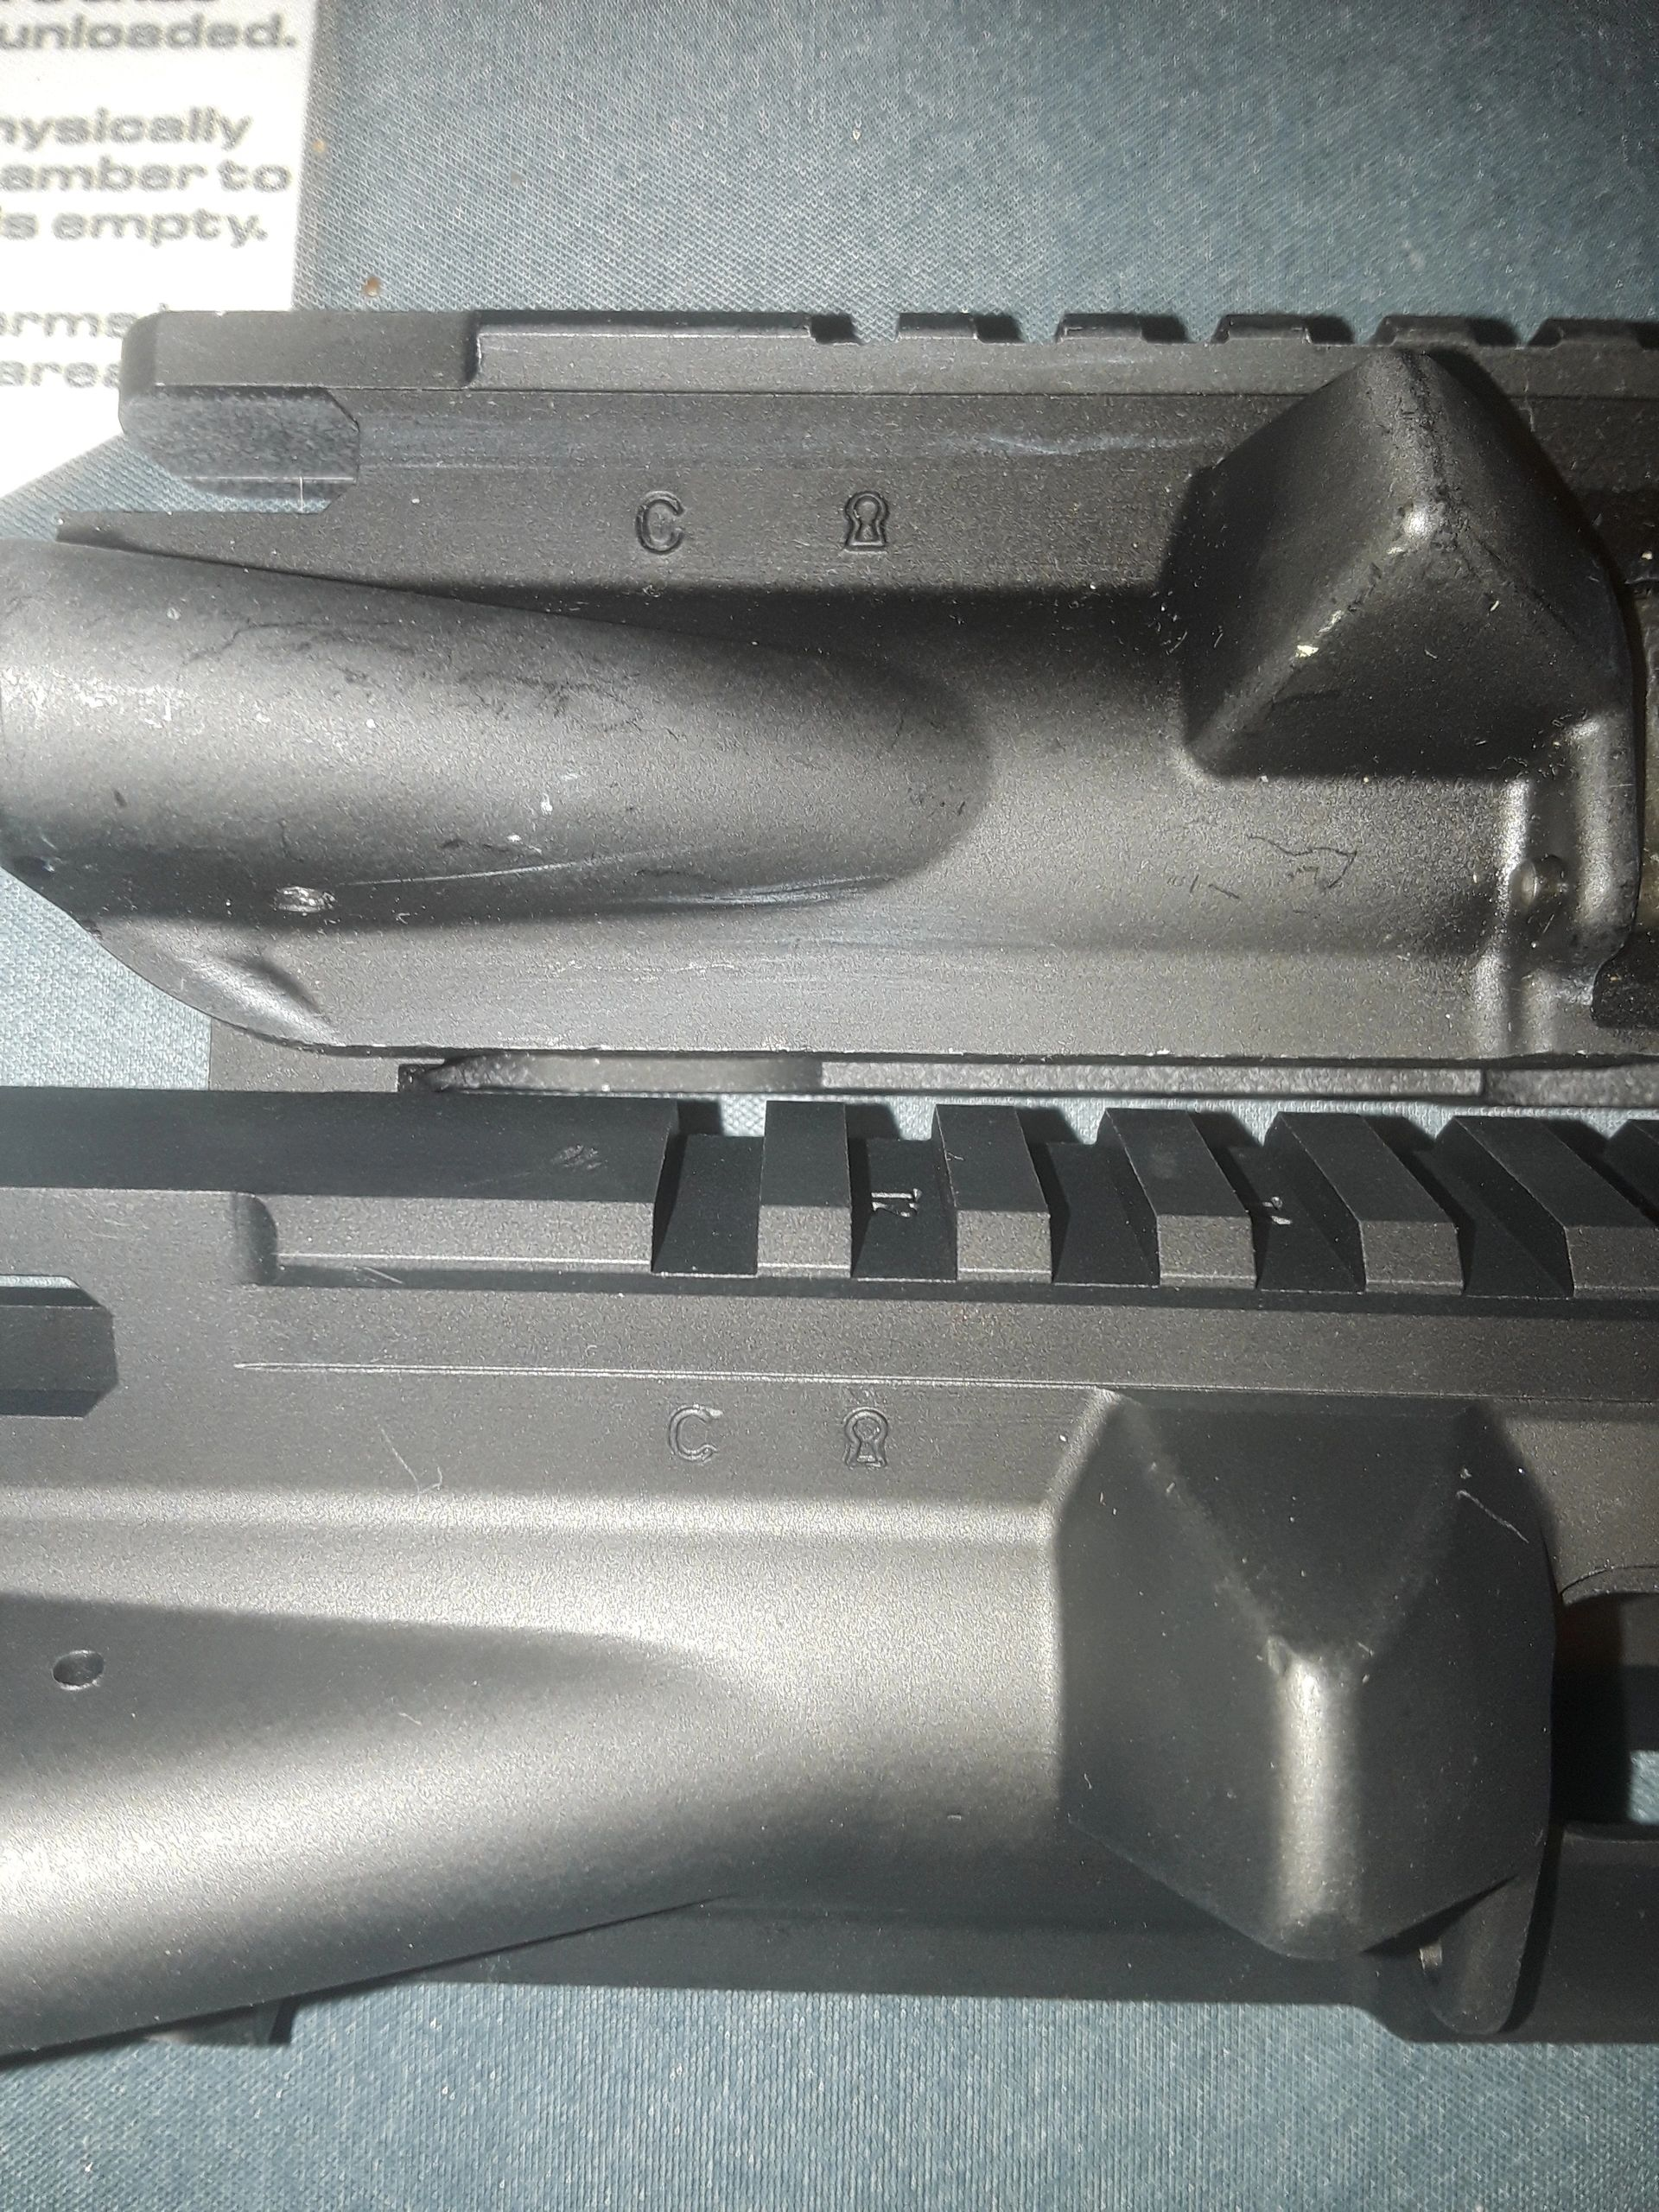 Fake Colt Uppers **BEWARE**